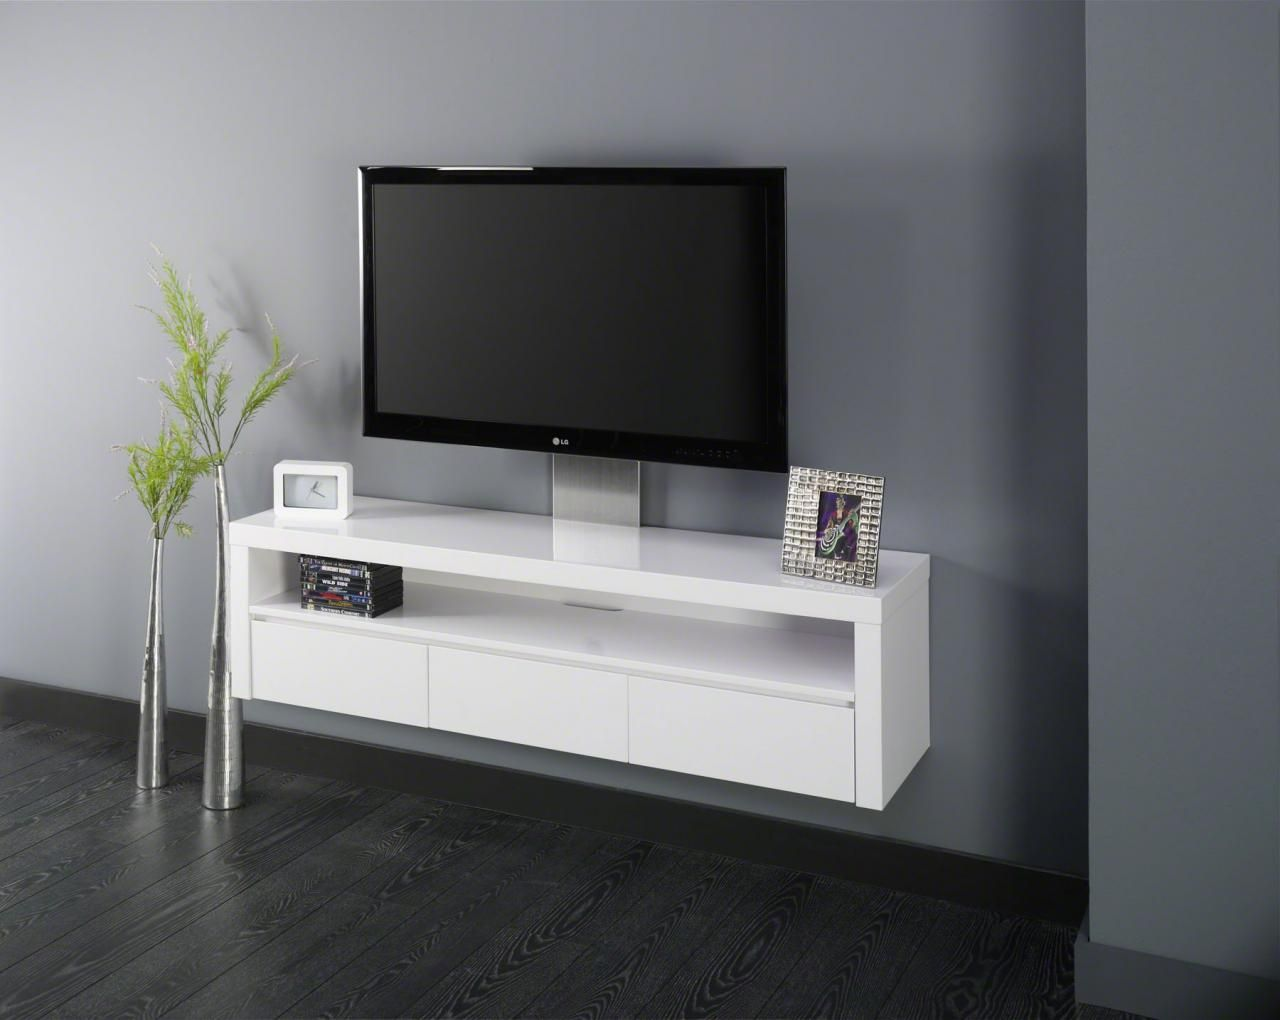 Meubles Tv Meuble Tv Hi Fi Design Suspendu Serena 3 Tiroirs  # Creation Meuble Tv D'Angle Suspendu